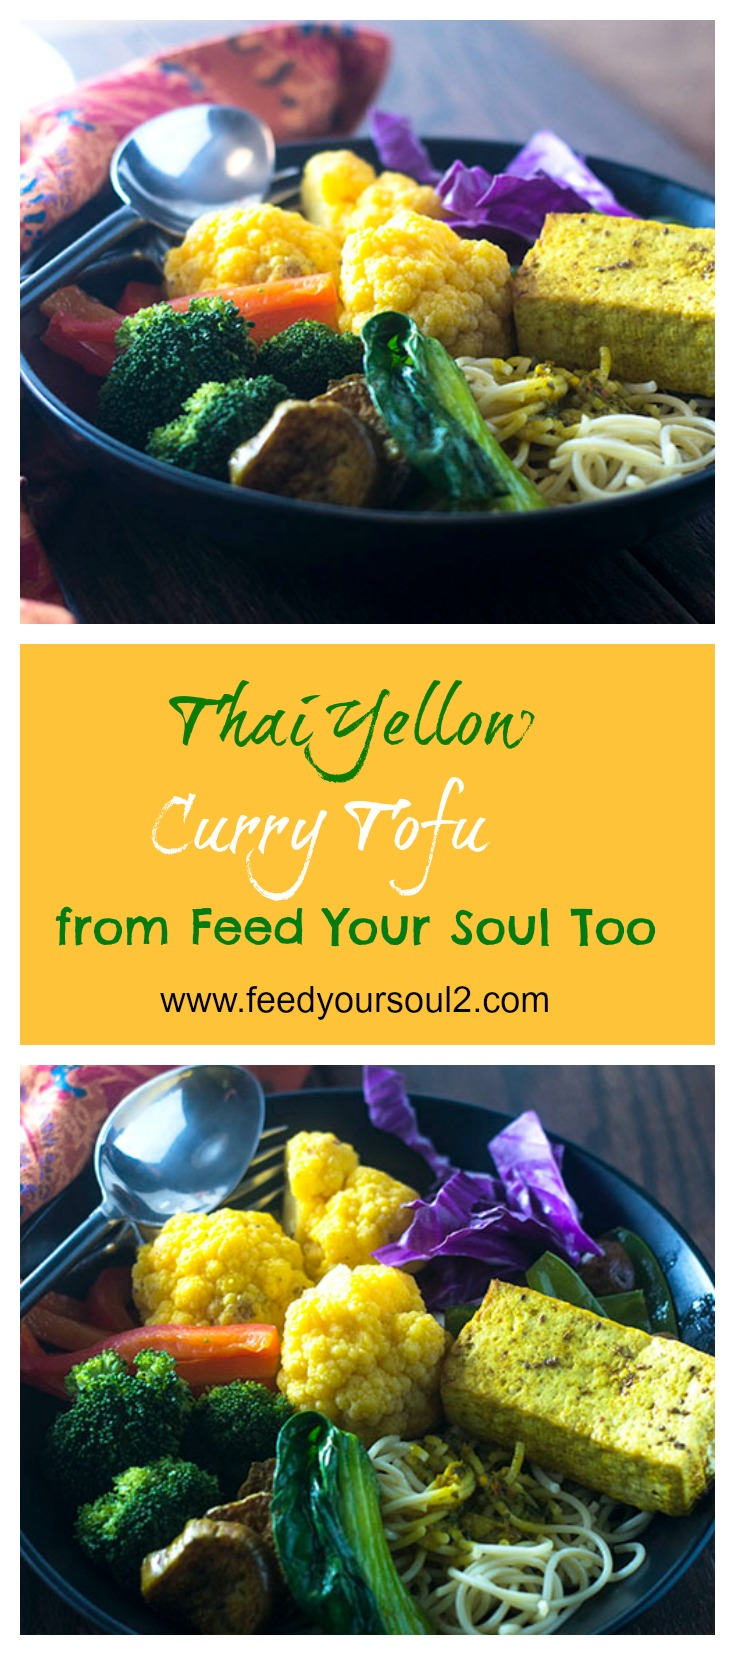 Thai Yellow Curry Tofu #vegan #Thaifood #dinner #vegetarian | feedyoursoul2.com